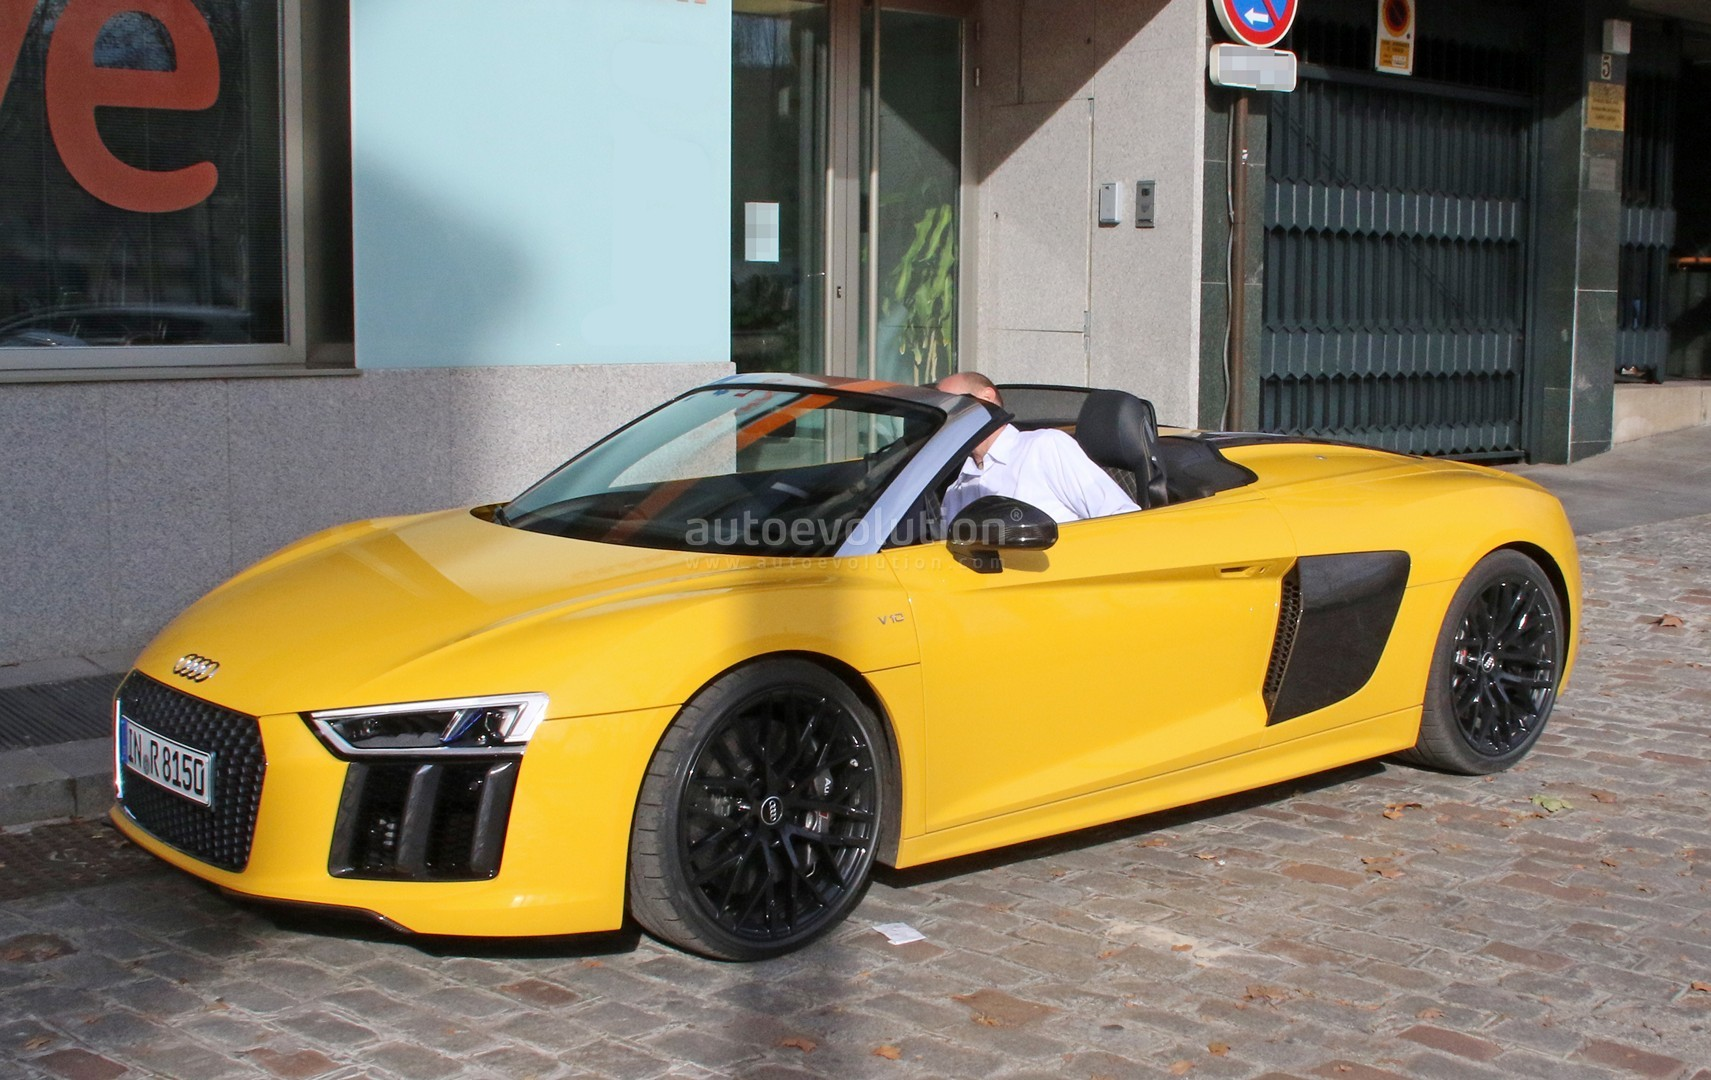 Spyshots 2017 Audi R8 Spyder Completely Revealed In Vegas